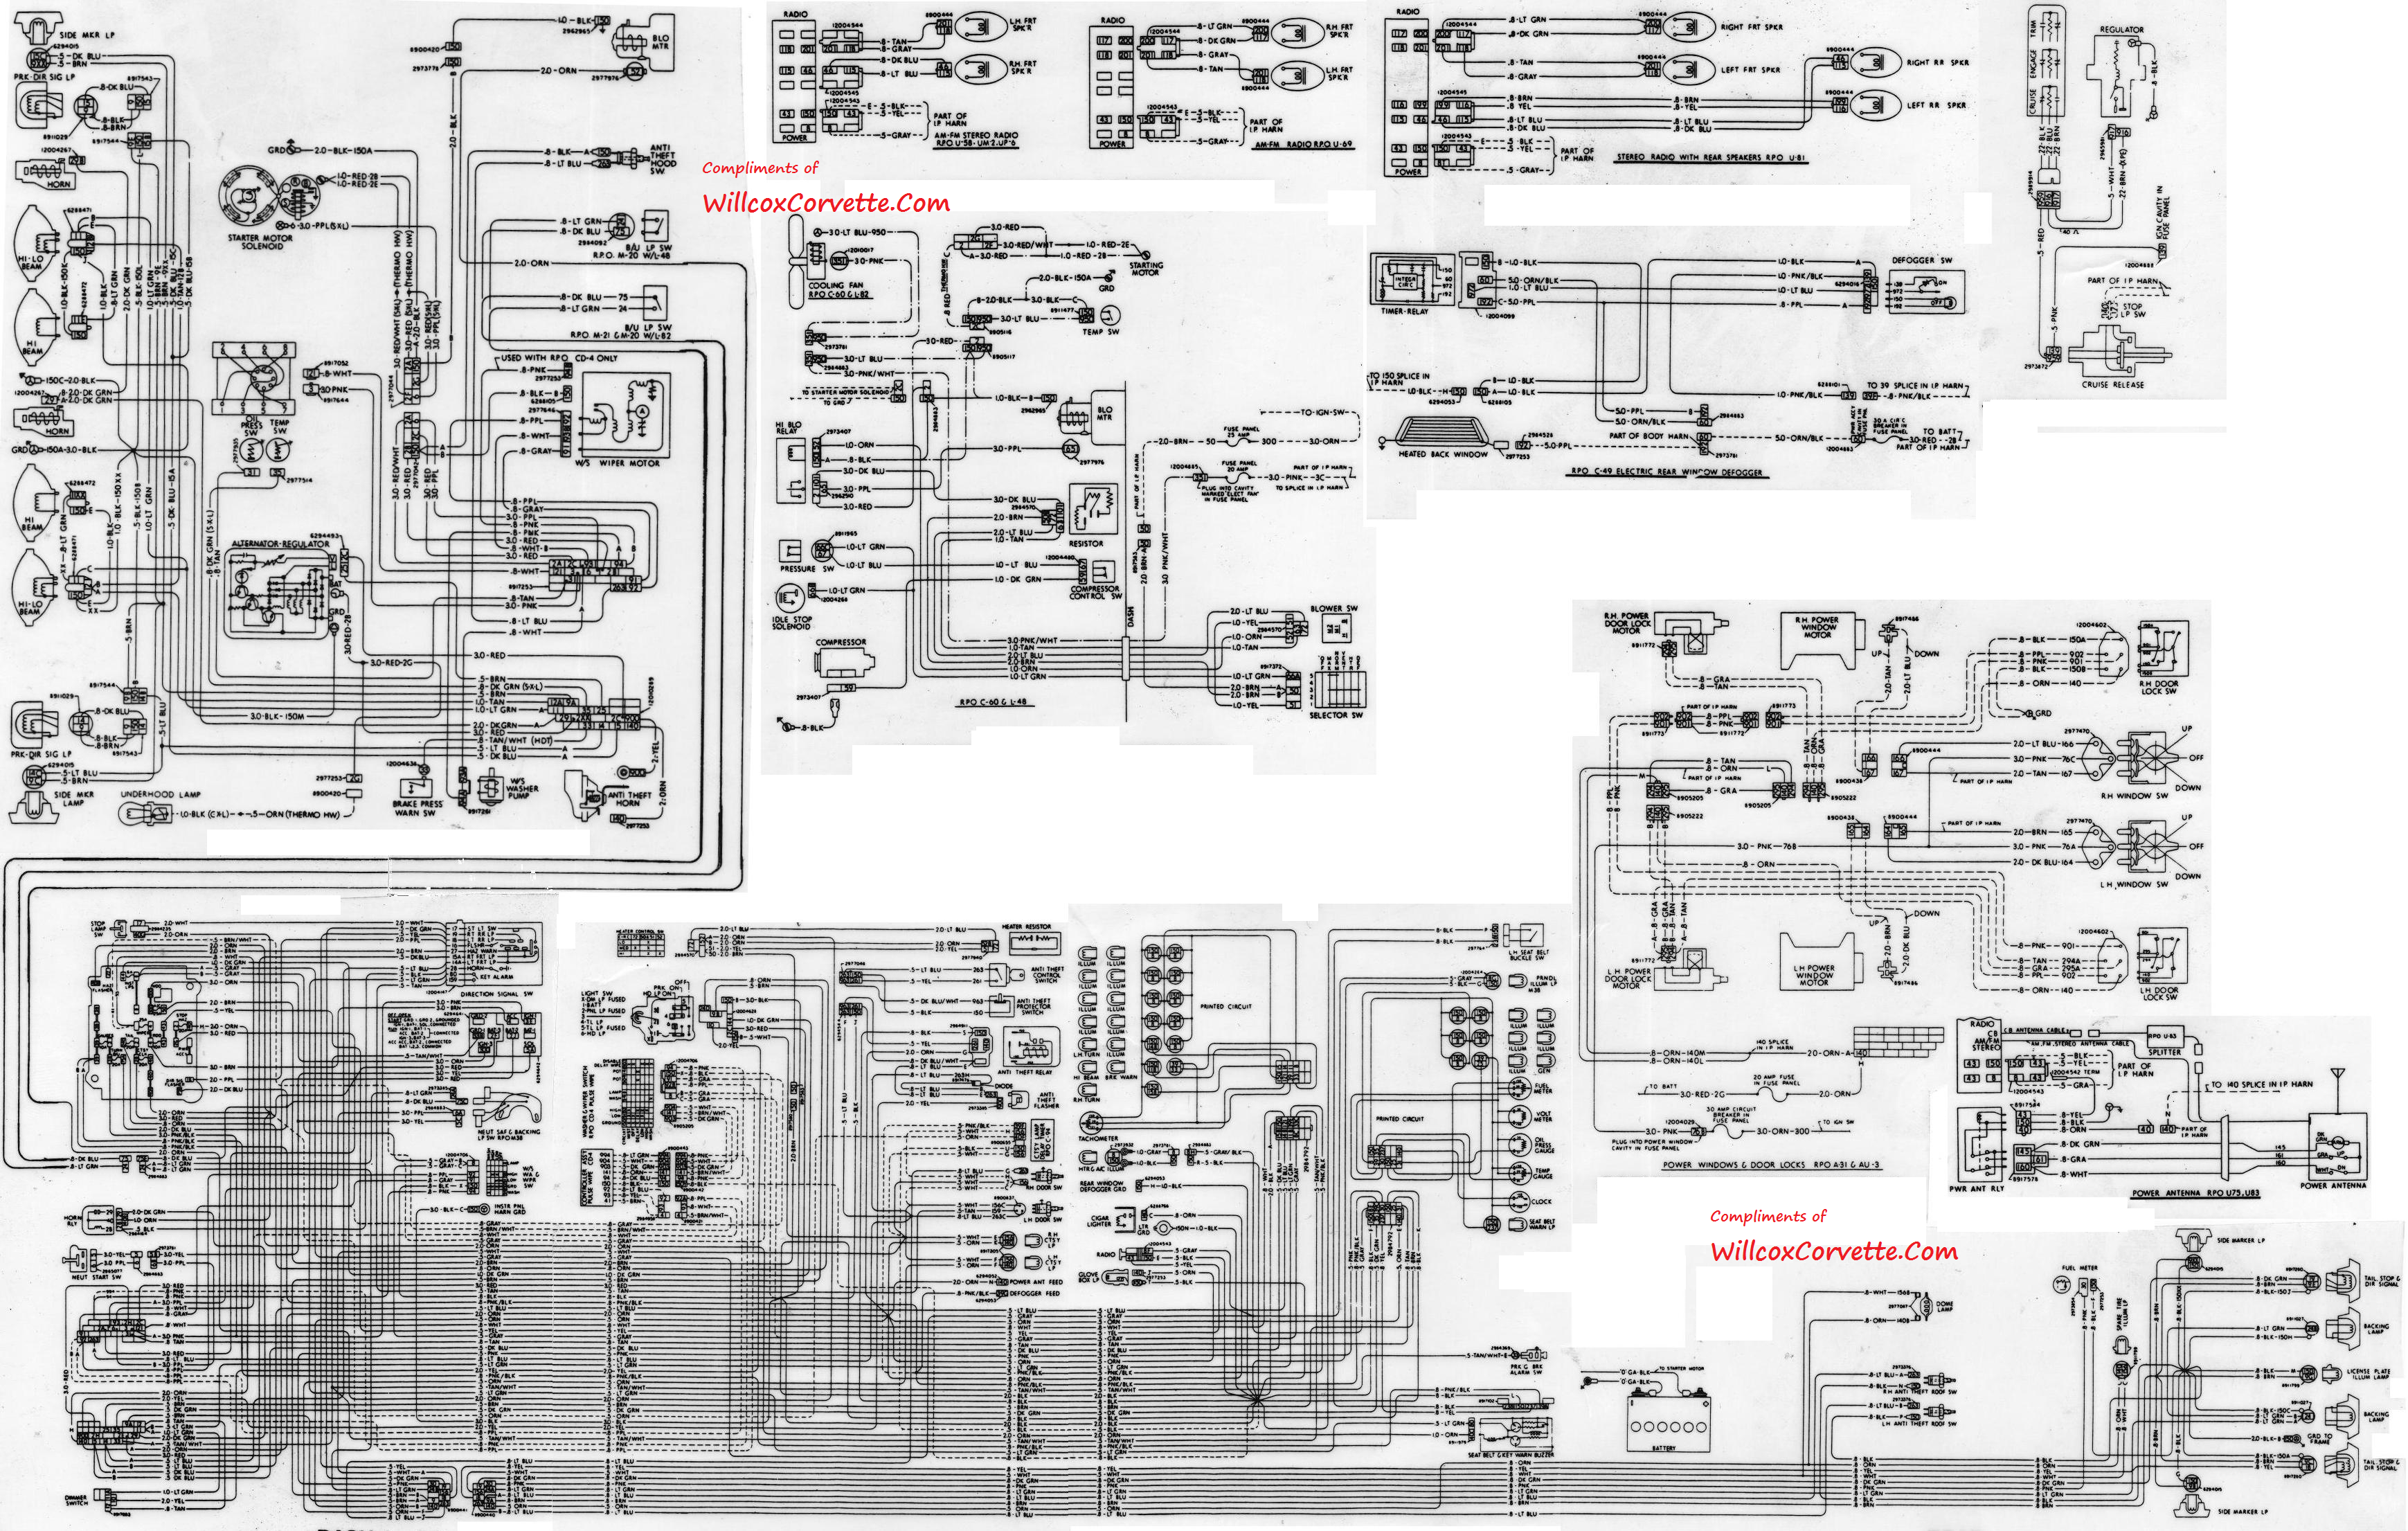 79 COMBINED TRACER SCHEMATIC 1979 wiring diagram corvetteforum chevrolet corvette forum c3 corvette wiring diagram at gsmx.co